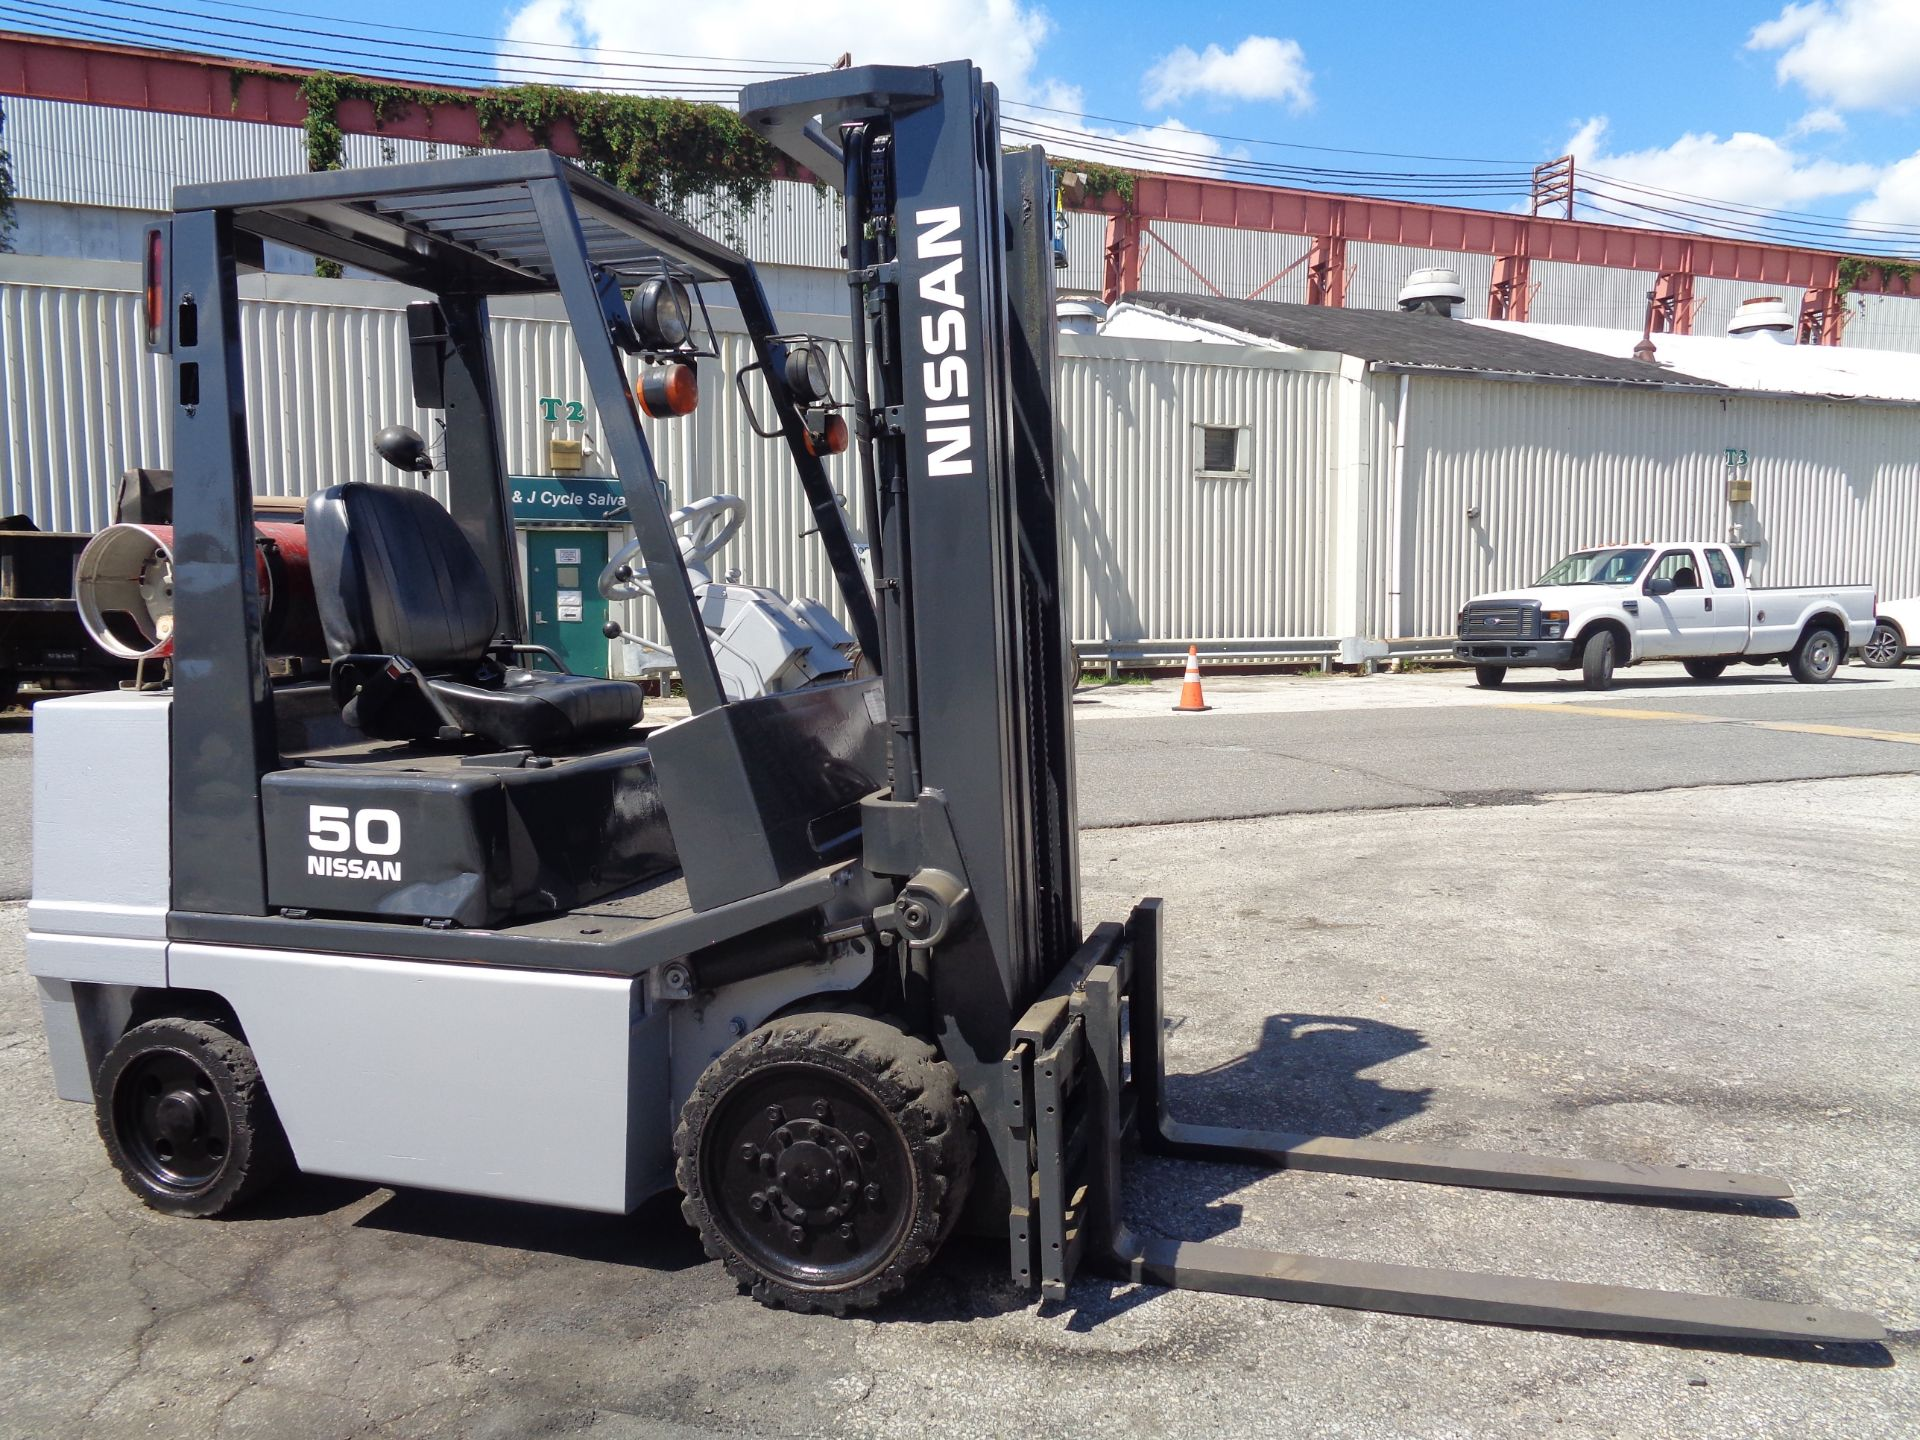 Nissan KCPH02A25PV 4,400 lb Forklift - Image 9 of 17